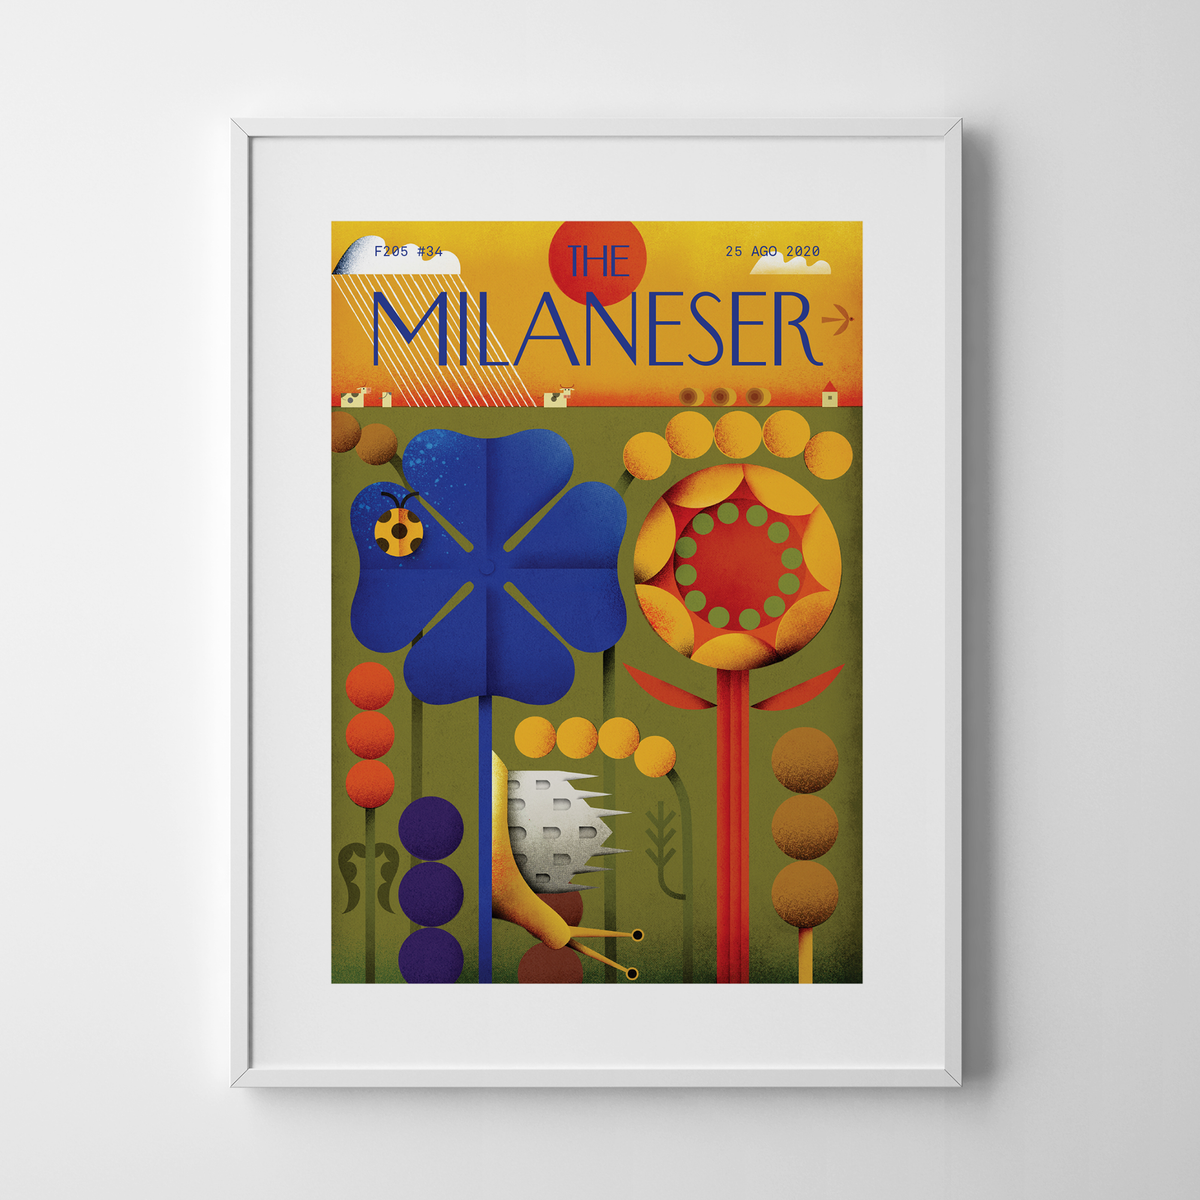 Image of The Milaneser #34